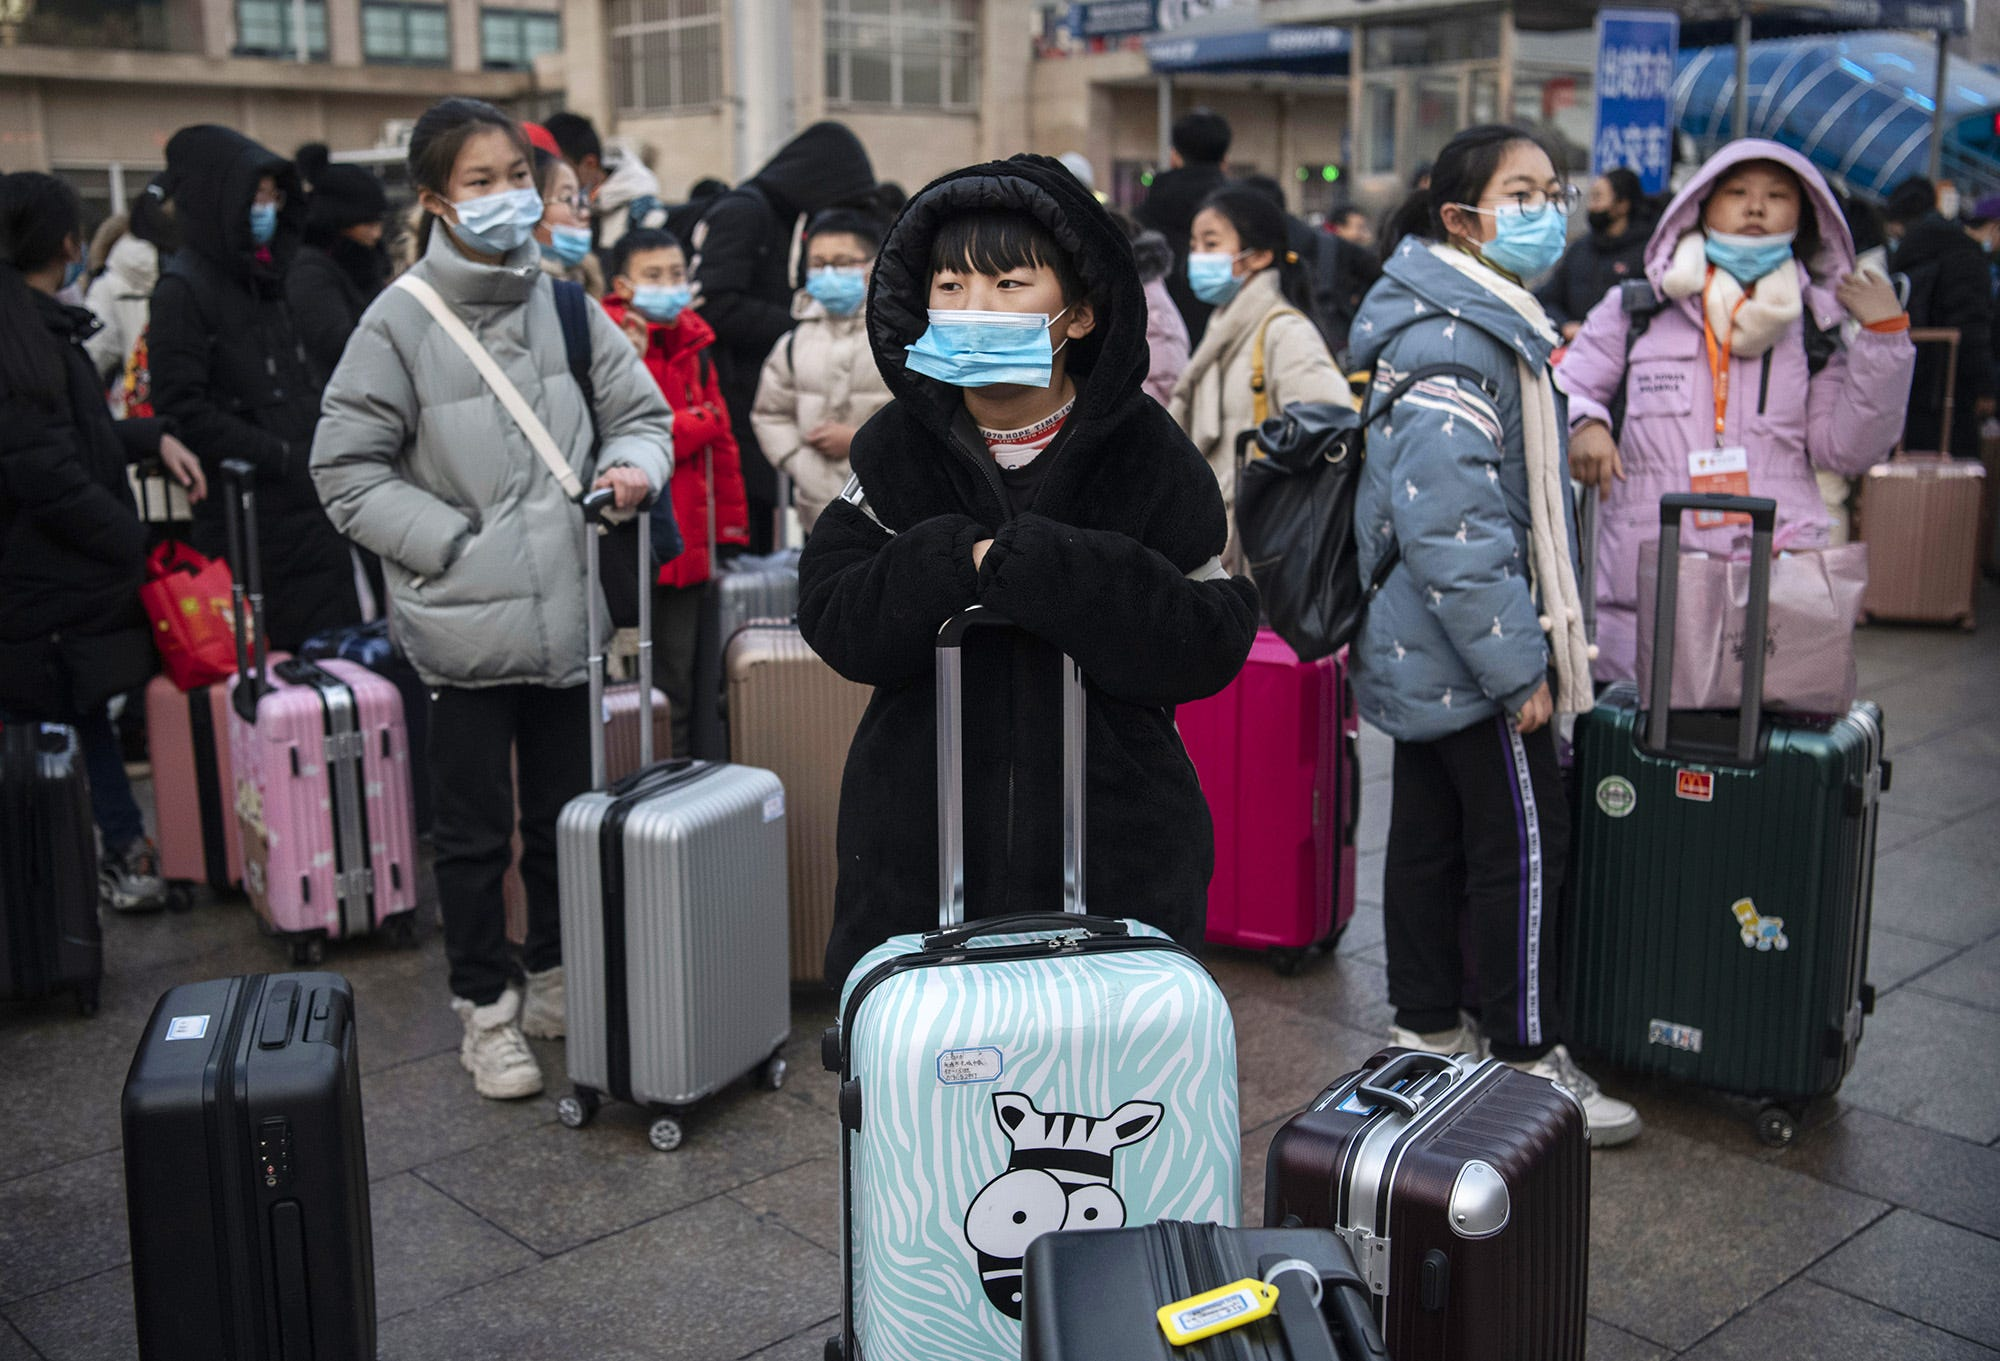 Slide 112 of 113: Chinese children wear protective masks as they wait to board trains at Beijing Railway station before the annual Spring Festival on Jan. 21, 2020 in Beijing, China. The number of cases of a deadly new coronavirus rose to nearly 300 in mainland China Tuesday as health officials stepped up efforts to contain the spread of the pneumonia-like disease which medicals experts confirmed can be passed from human to human. The number of those who have died from the virus in China climbed to six on Tuesday and cases have been reported in other parts of Asia including in Thailand, Japan, Taiwan and South Korea.